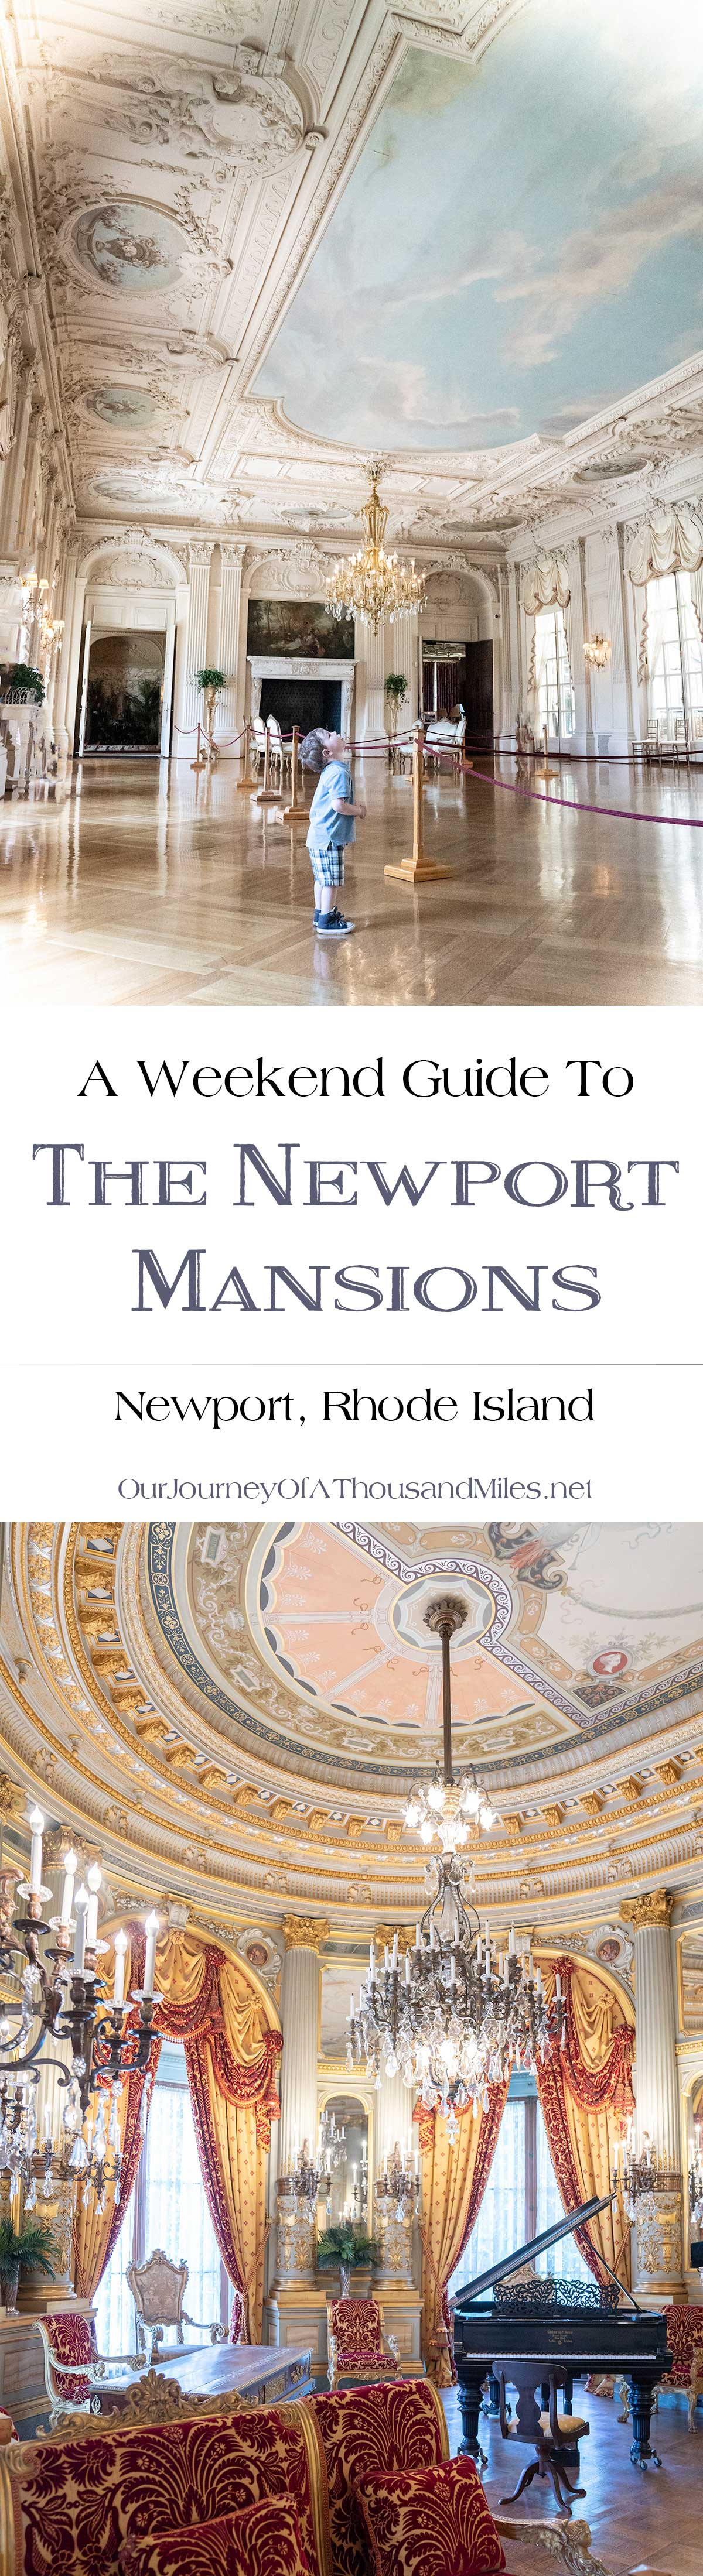 A-Weekend-Guide-To-The-Newport-Mansions-In-Newport-Rhode-Island